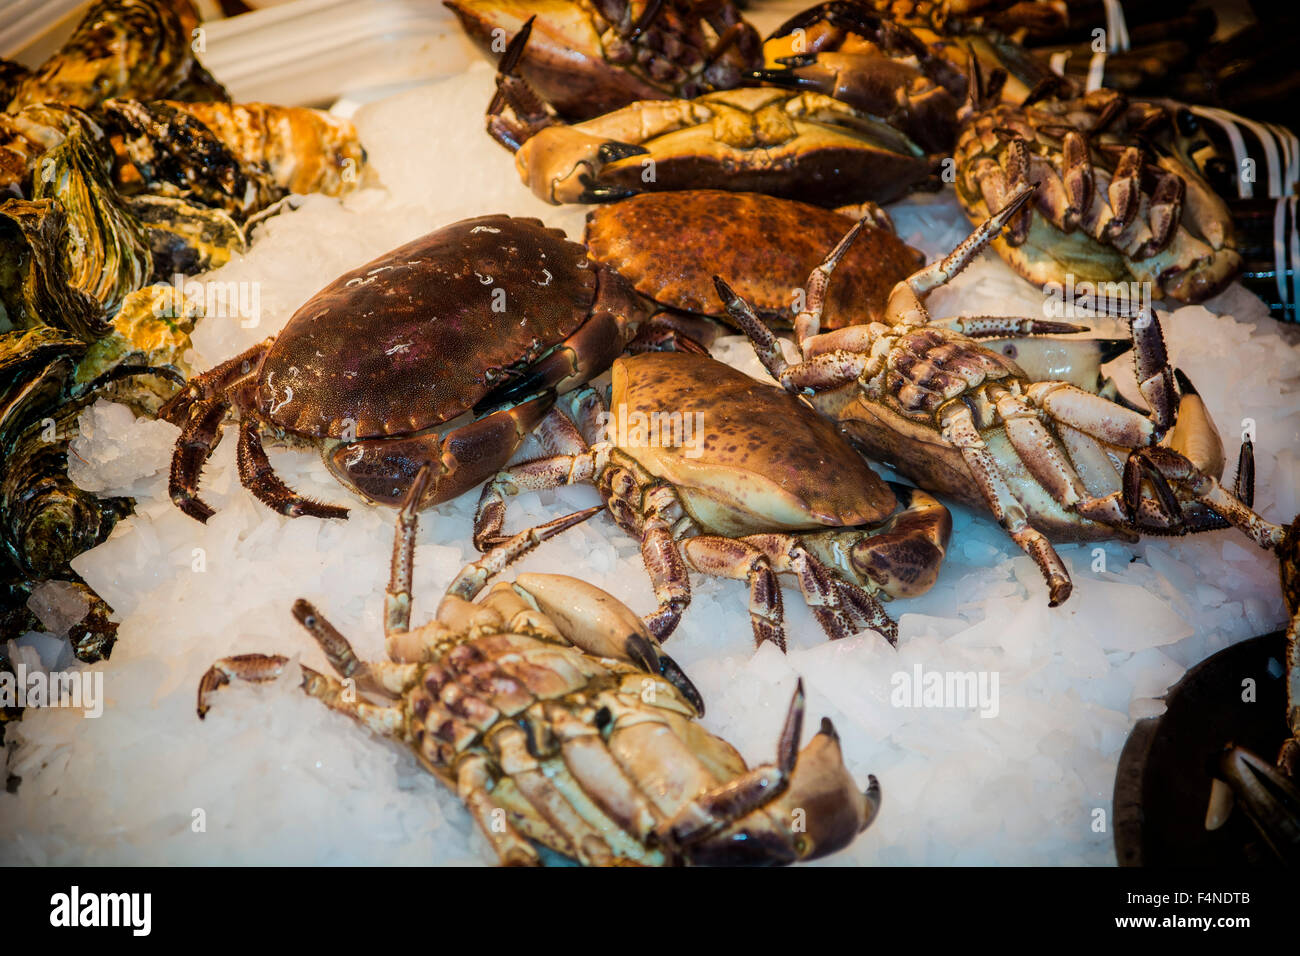 Fresh marine crabs displayed on crushed ice at a seafood market or fisheries to be used in gourmet seafood cuisine - Stock Image